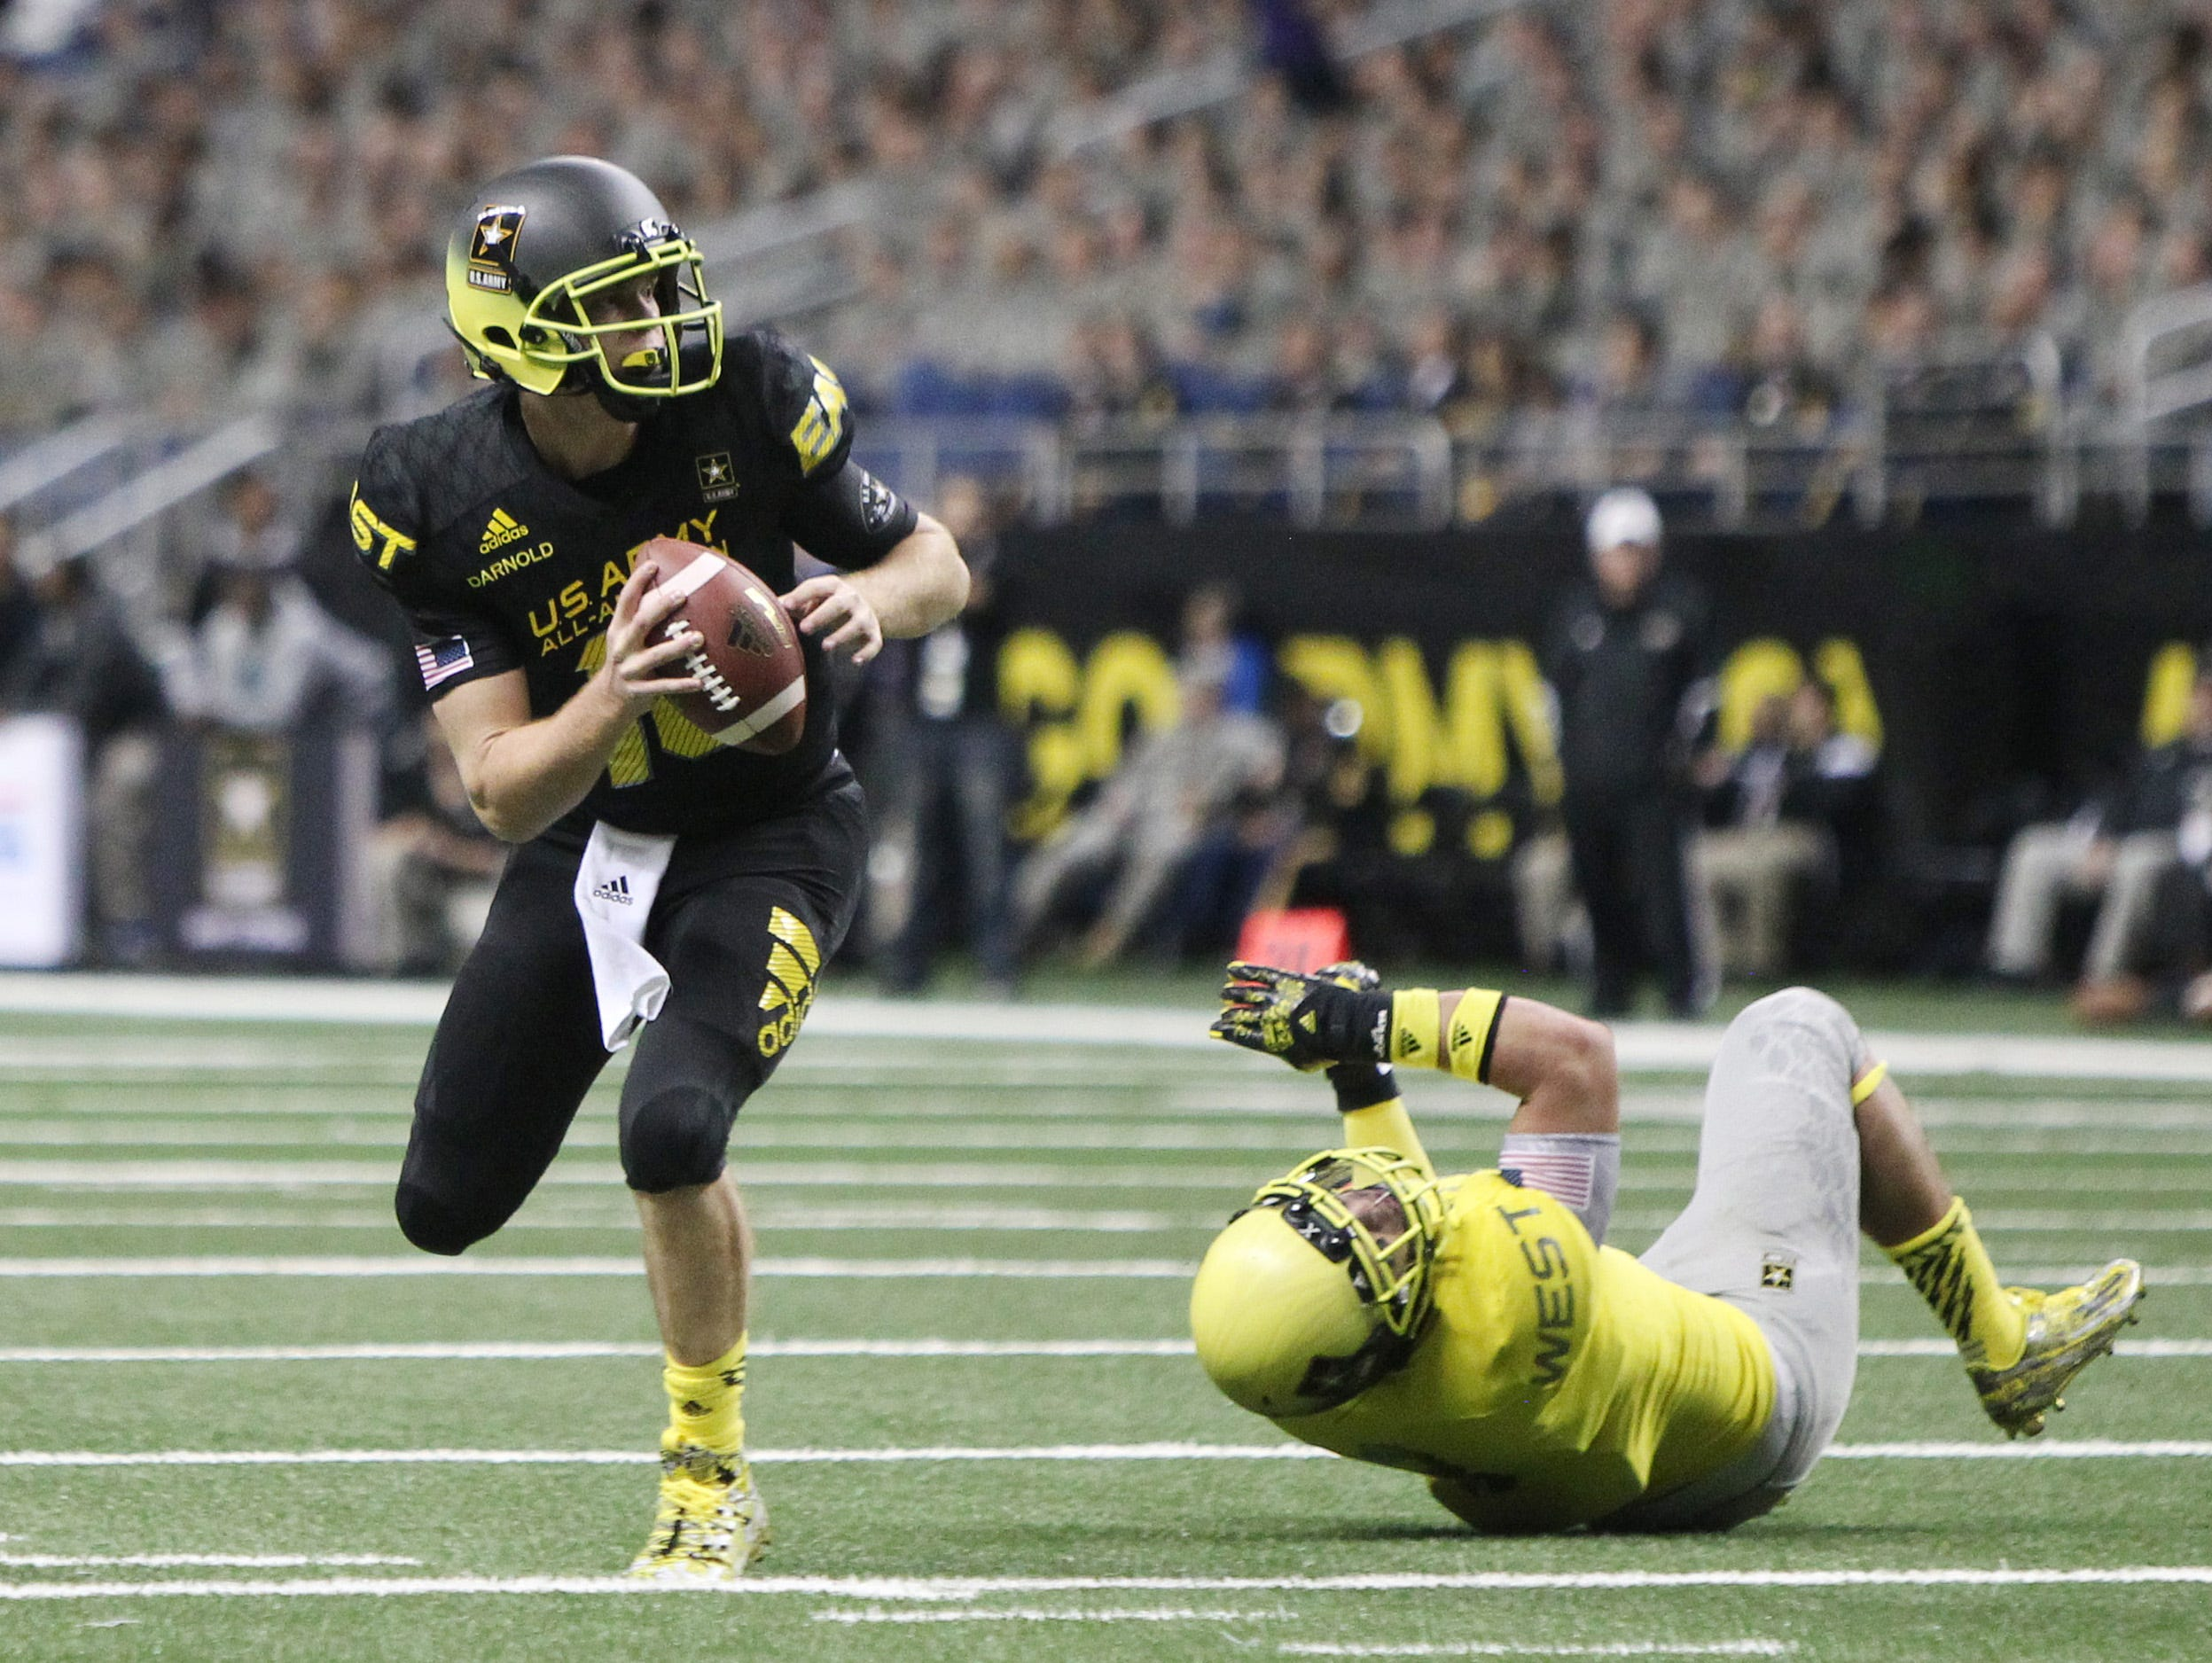 Jan 3, 2015; San Antonio, TX, USA; East quarterback Sam Darnold (18) gets away from West linebacker Osa Masina (3) in the U.S. Army All-American Bowl at the Alamodome. West beat East 39-36. Mandatory Credit: Erich Schlegel-USA TODAY Sports